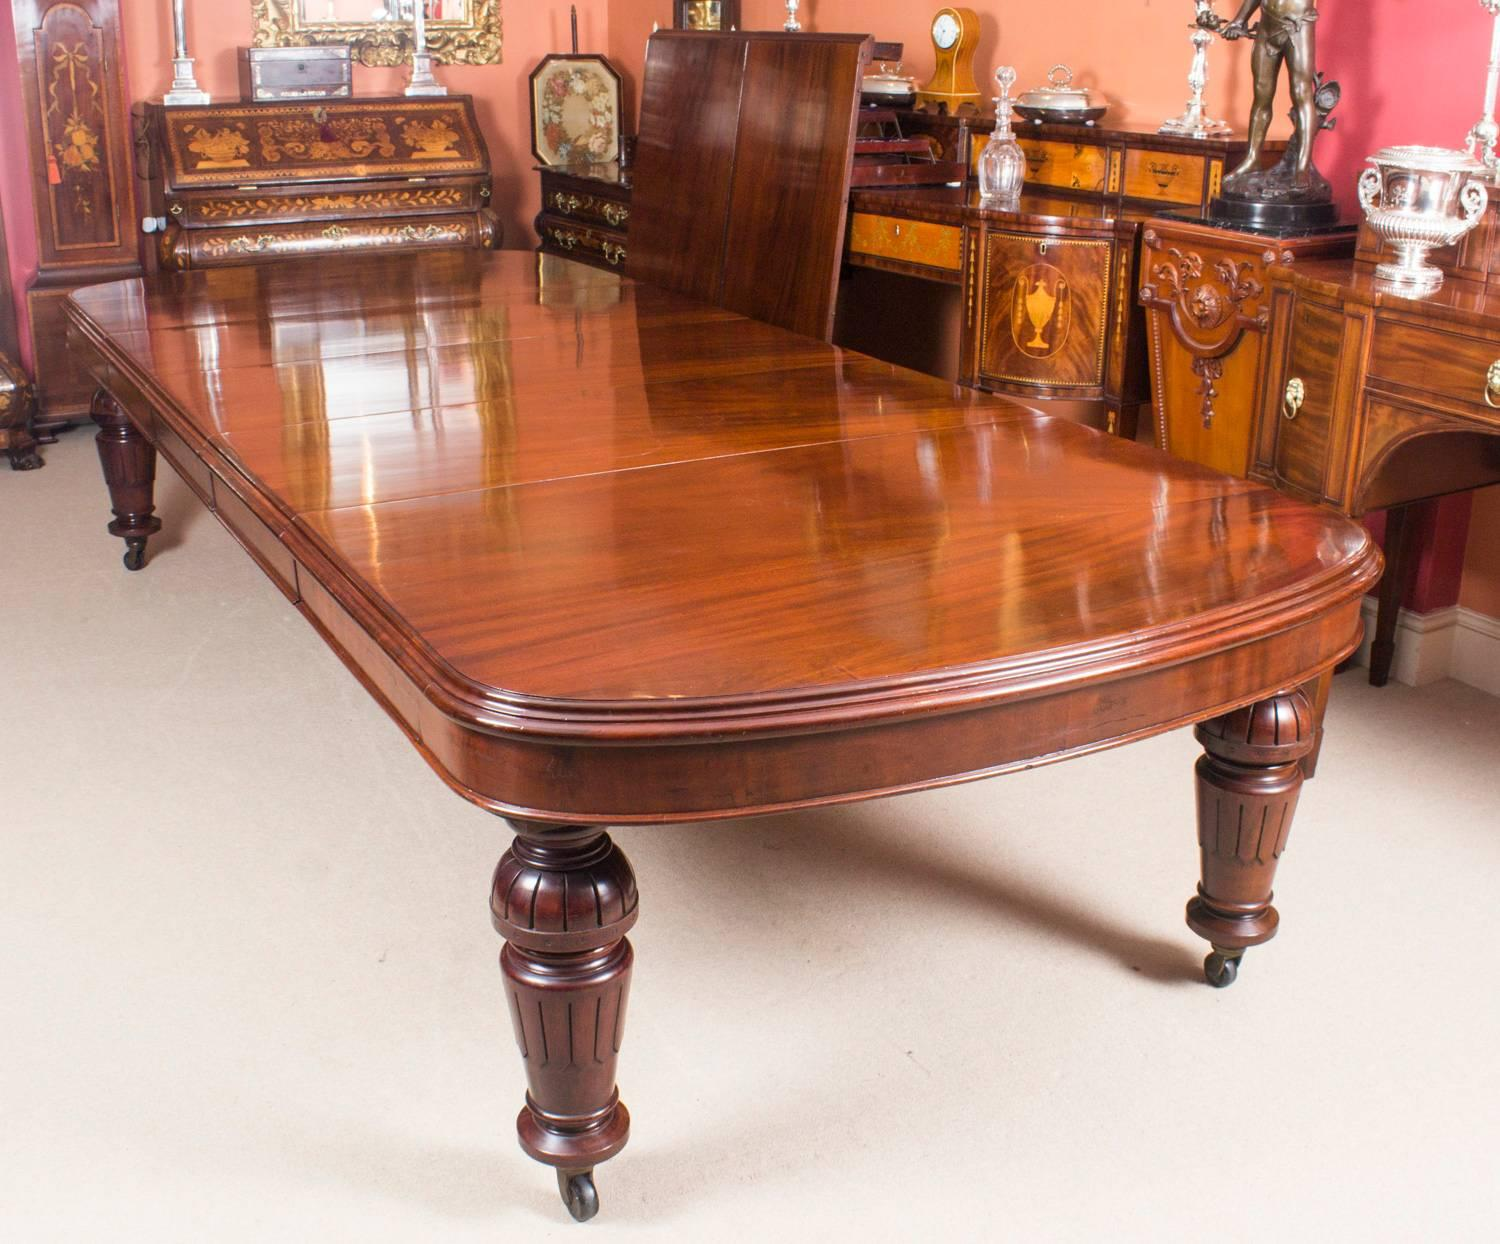 Antique Victorian D-End Mahogany Dining Table 19th Century and 16 Chairs at  1stdibs - Antique Victorian D-End Mahogany Dining Table 19th Century And 16